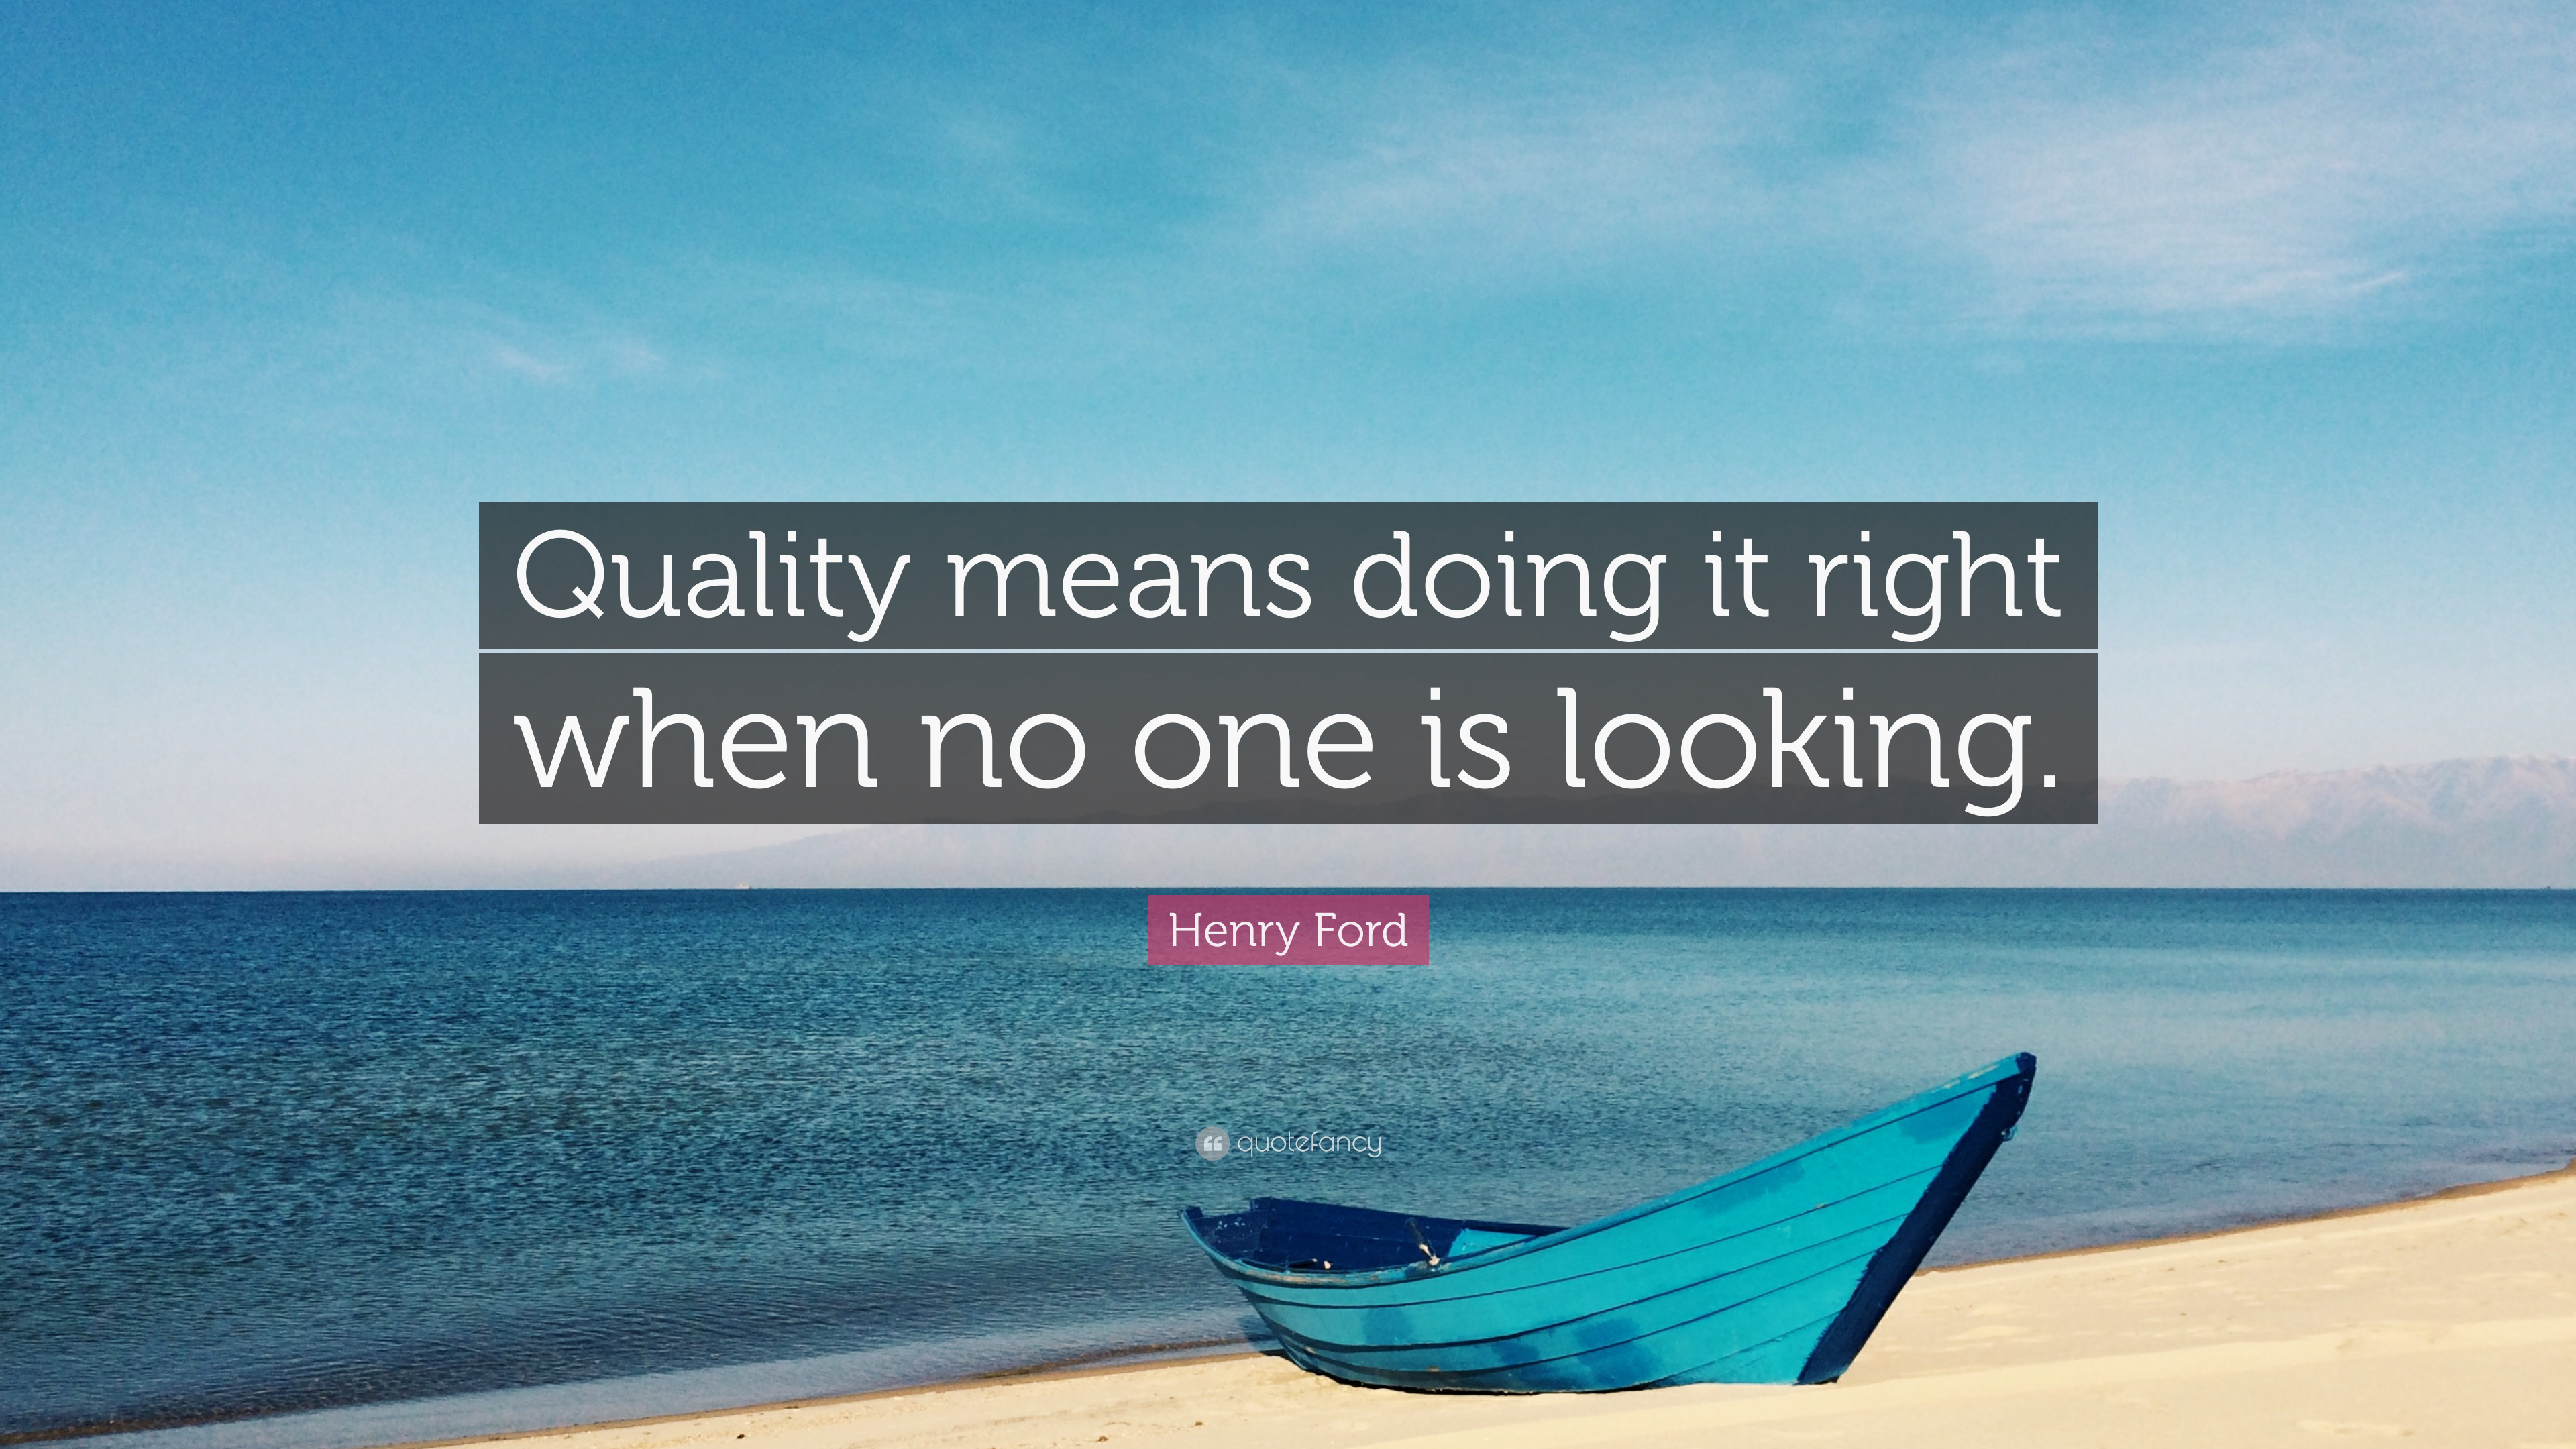 Gary Vaynerchuk Quotes Wallpaper Henry Ford Quote Quality Means Doing It Right When No